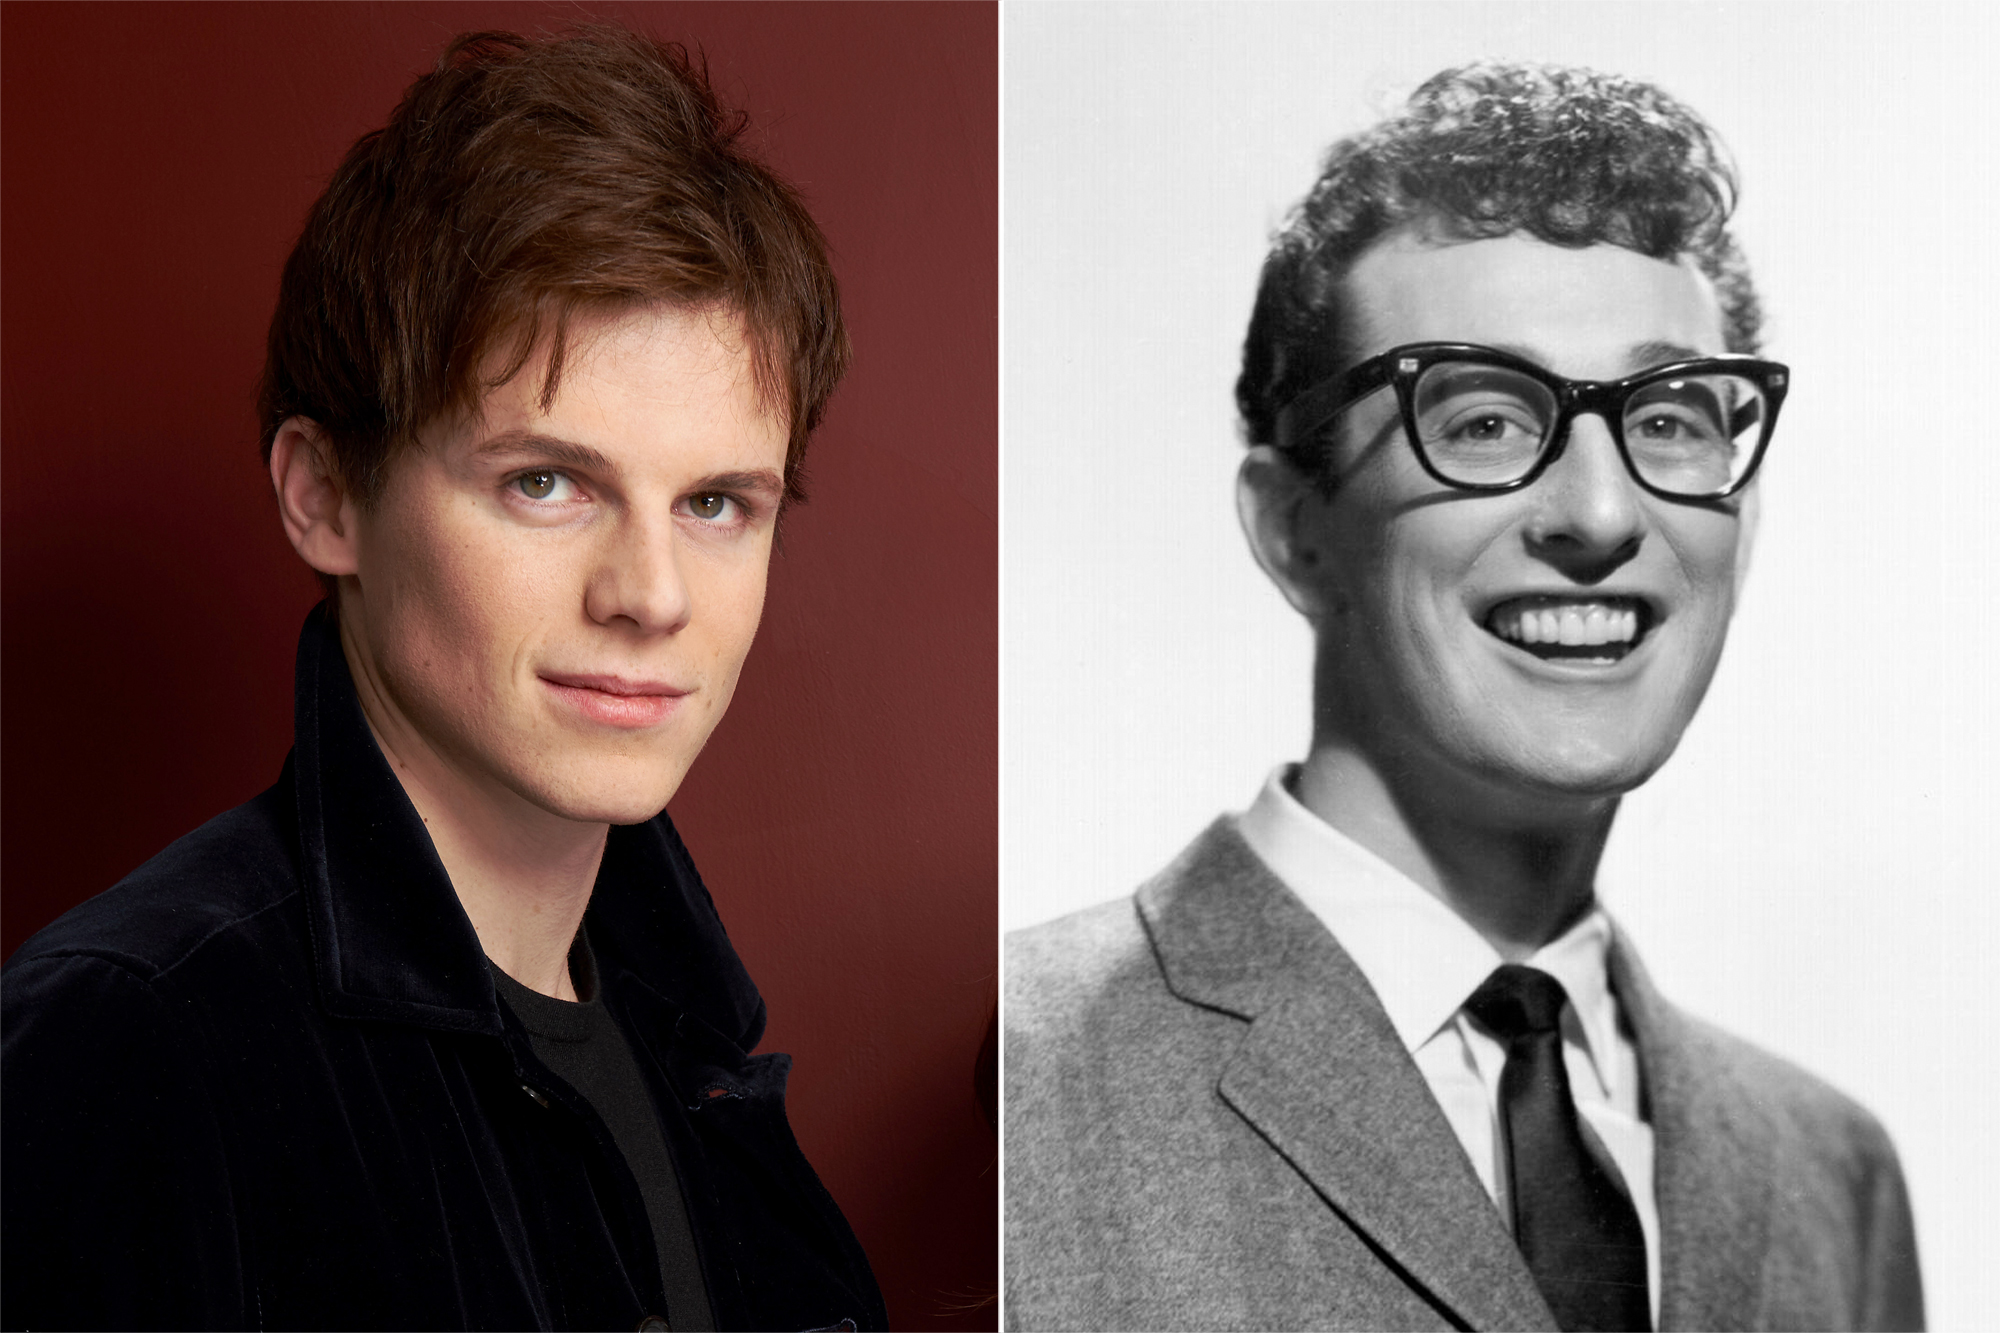 Ruairi O'Connor and Buddy Holly